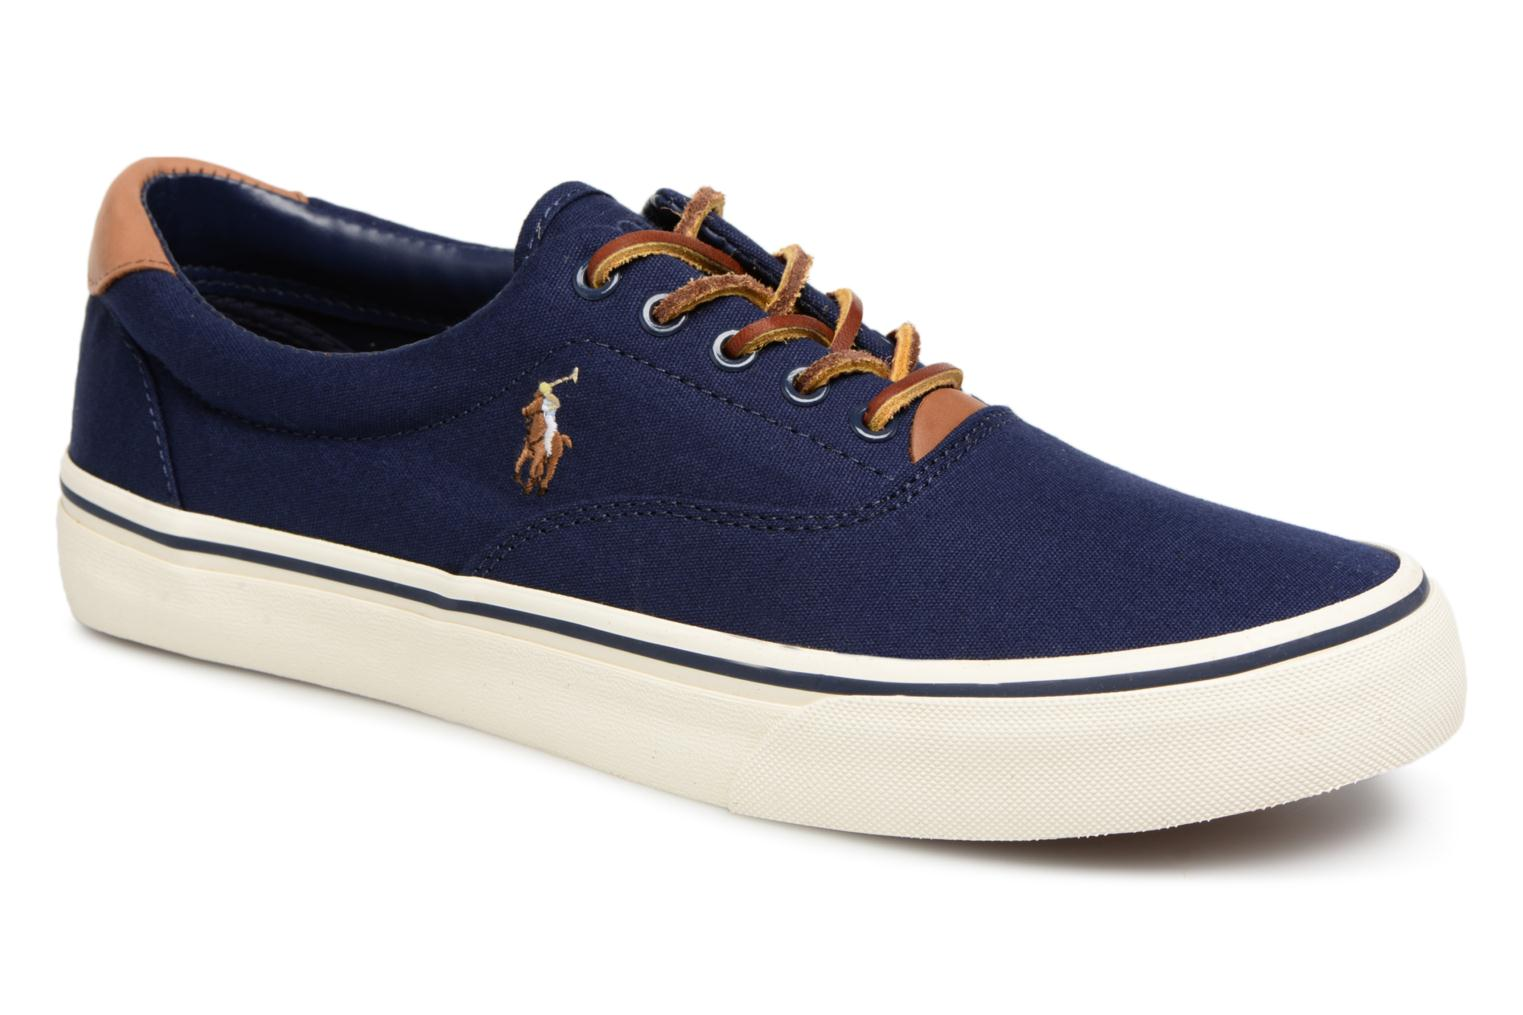 Thorton Canvas par Polo Ralph Lauren